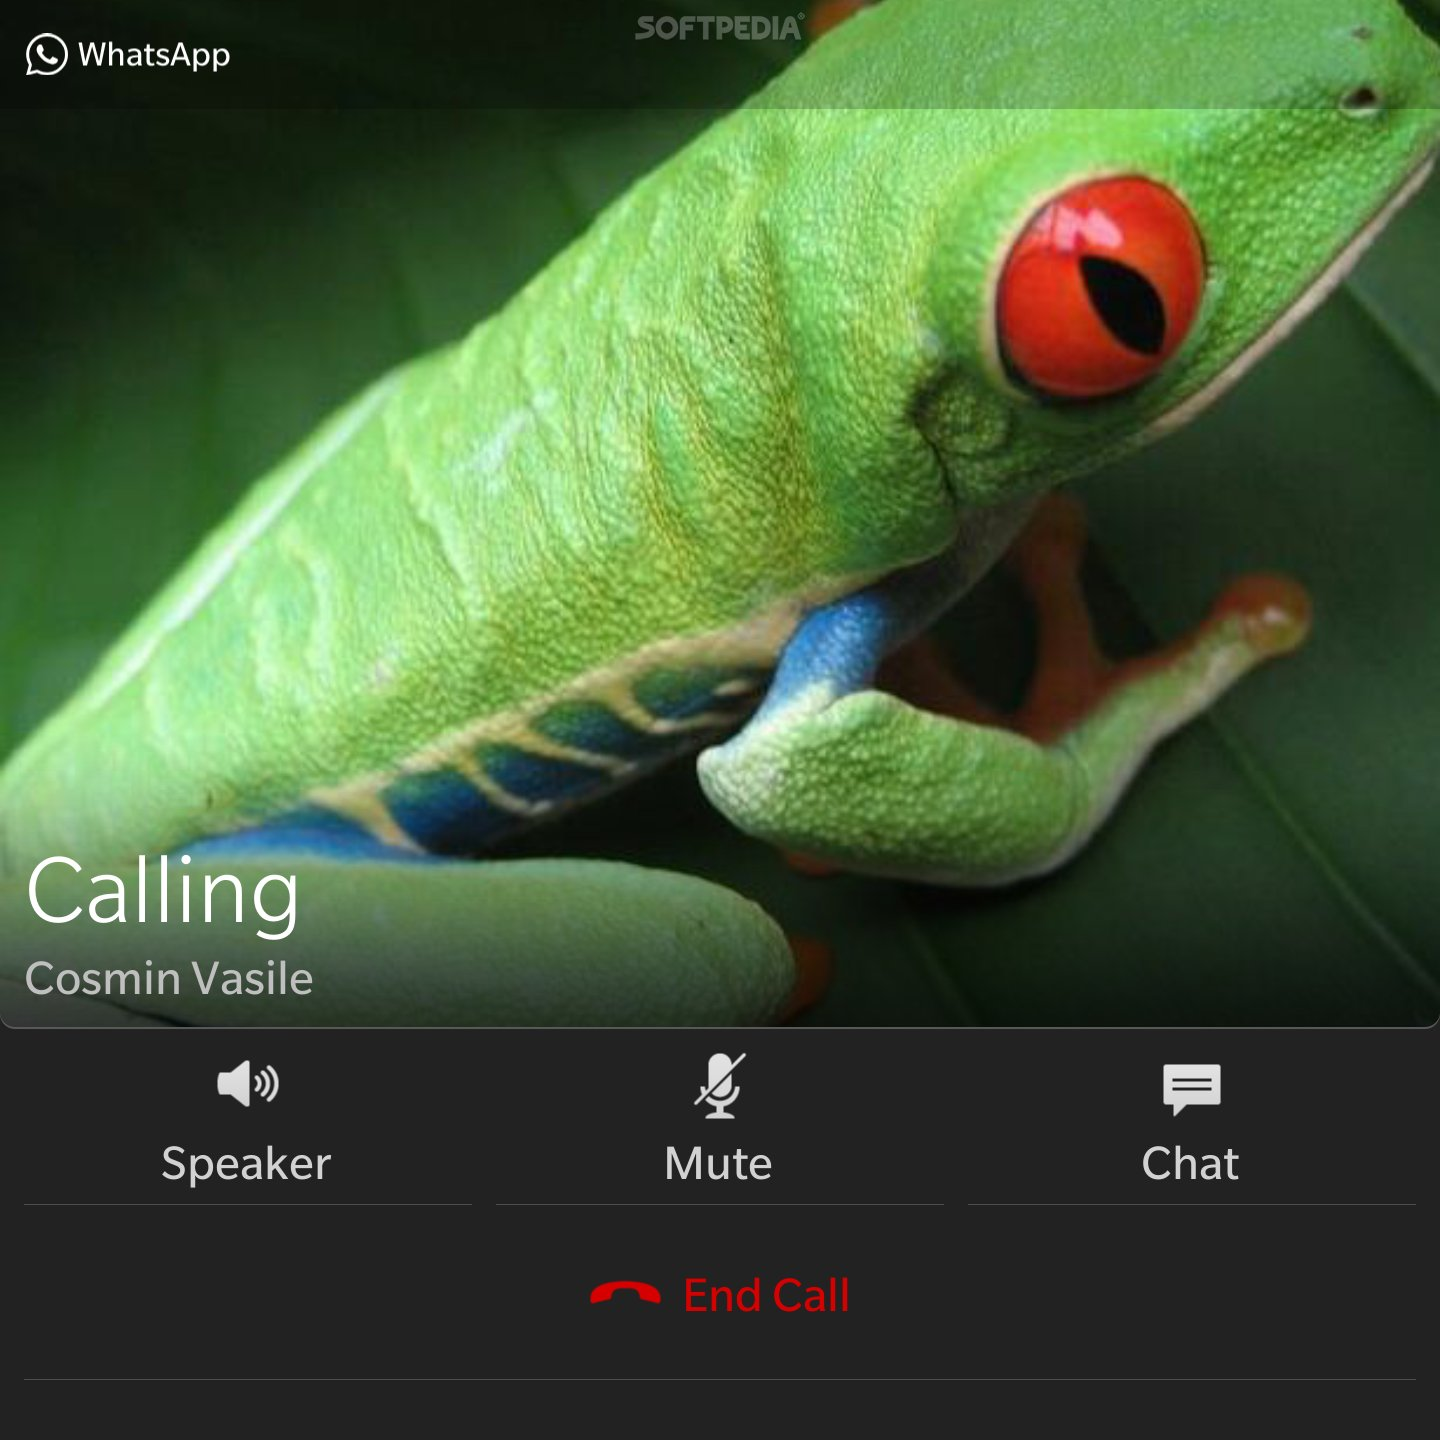 WhatsApp for BlackBerry Now Enables Voice Calling